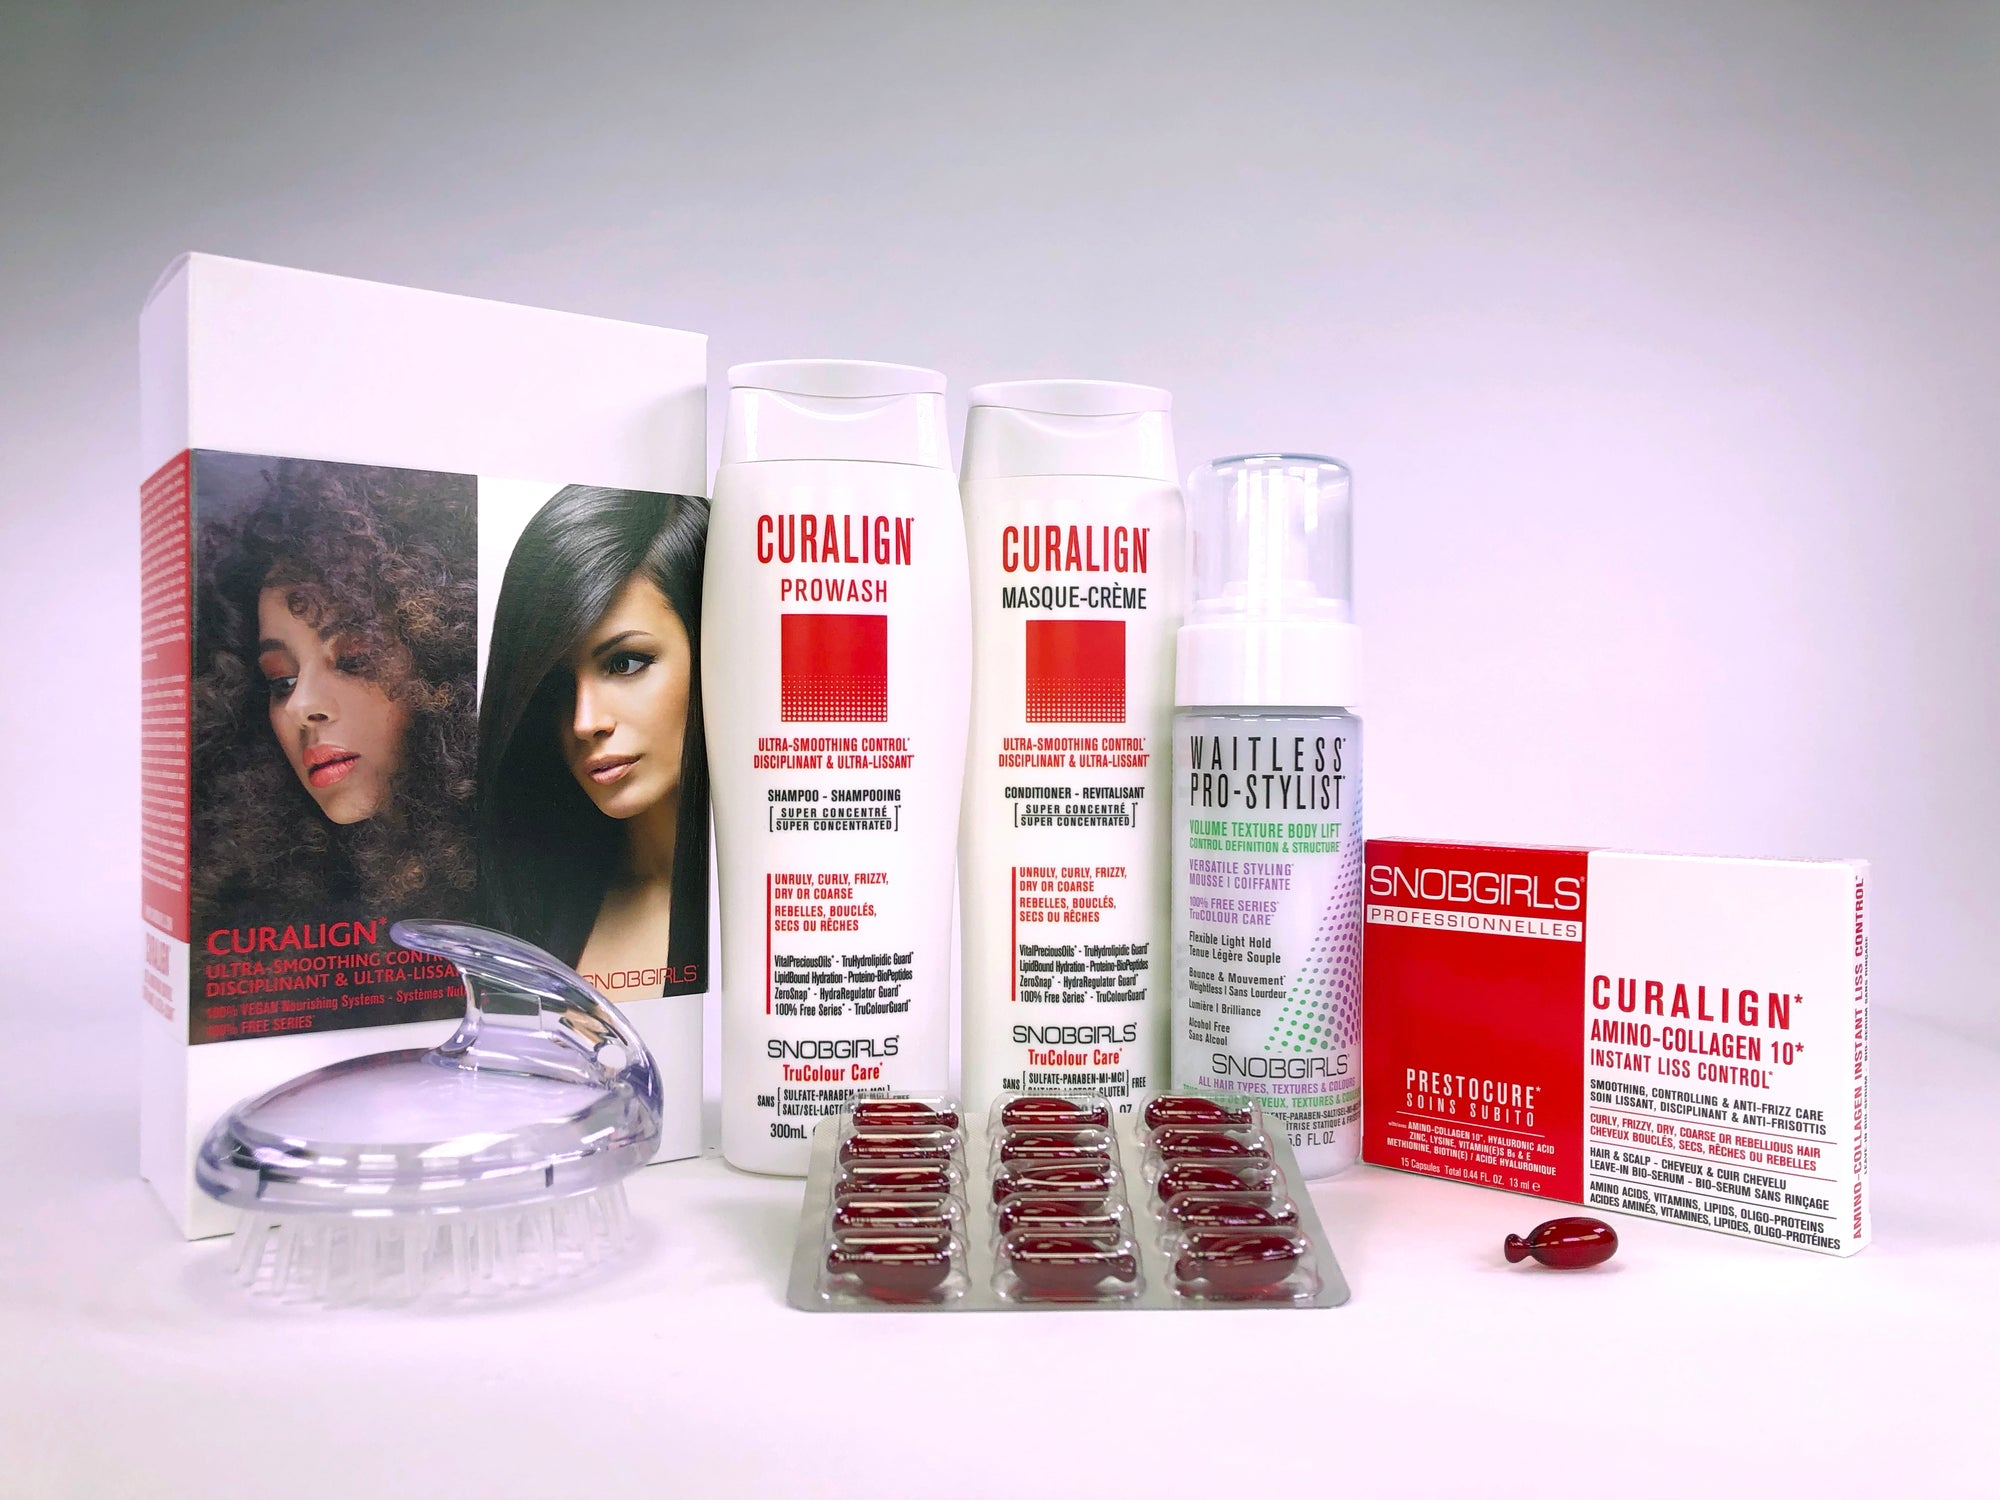 CURALIGN TRIO ULTRA-SMOOTHING CONTROL Bundle - SNOBGIRLS.com